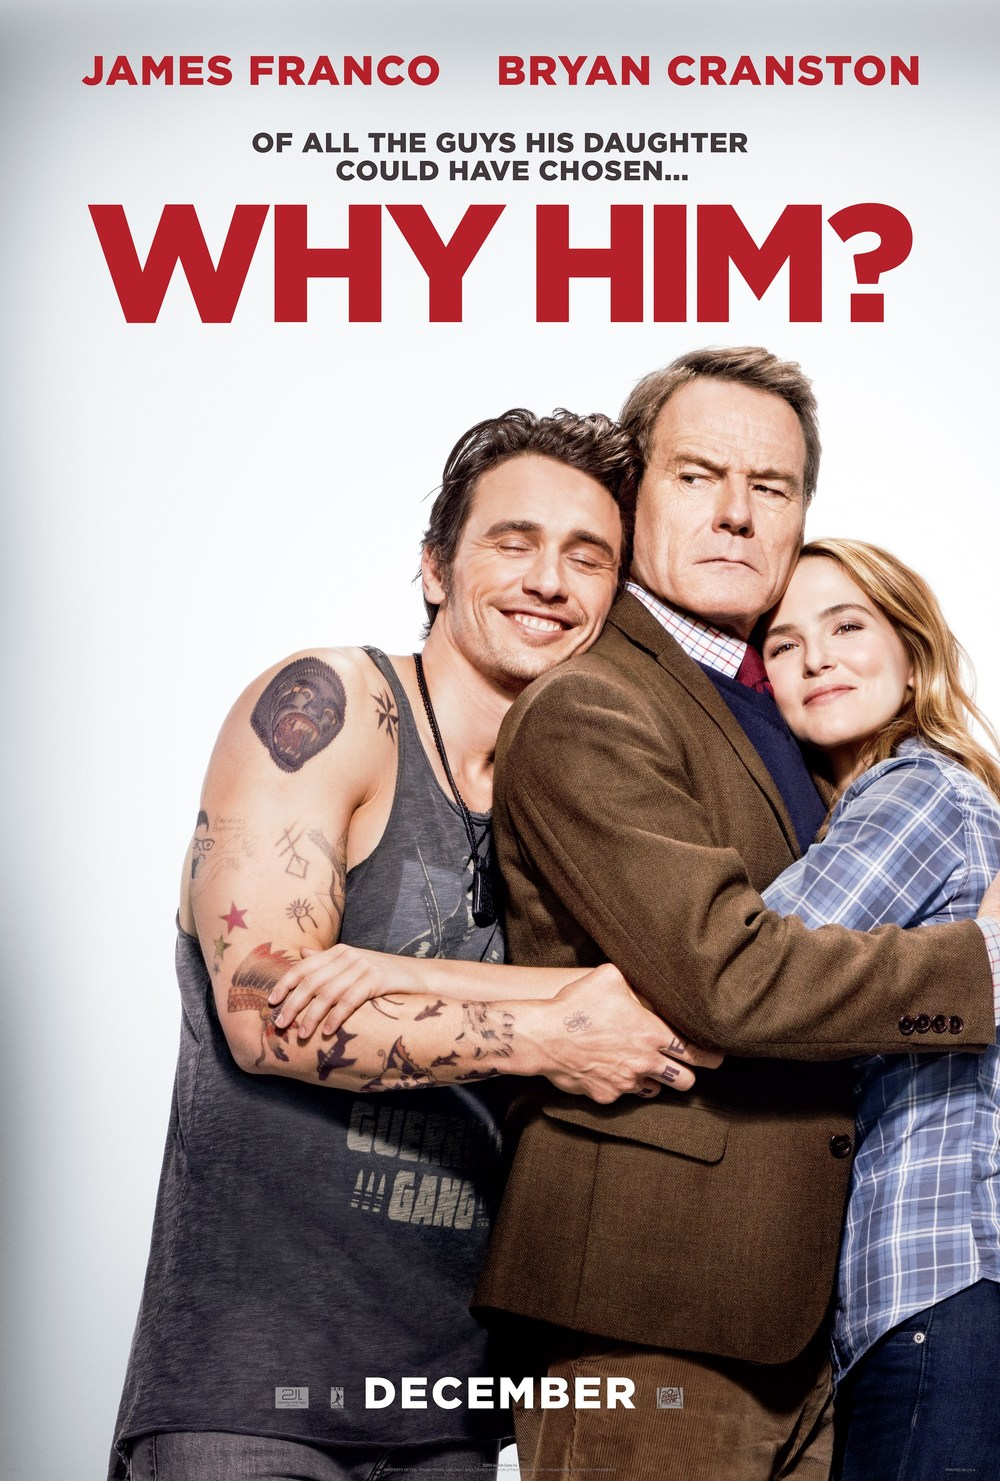 bryan-cranston-vs-james-franco-in-funny-red-band-trailer-for-why-him